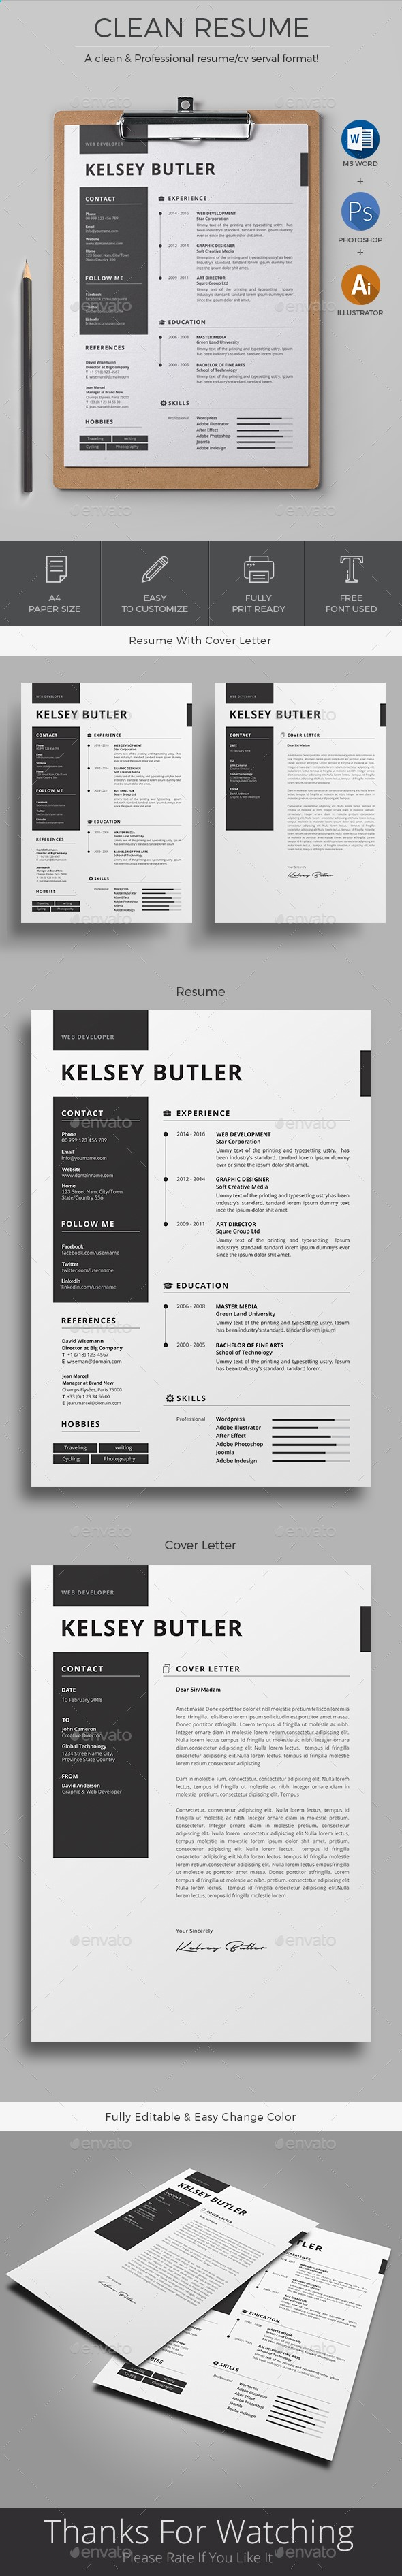 Resume Template PSD, AI, MS Word | Mind | Pinterest